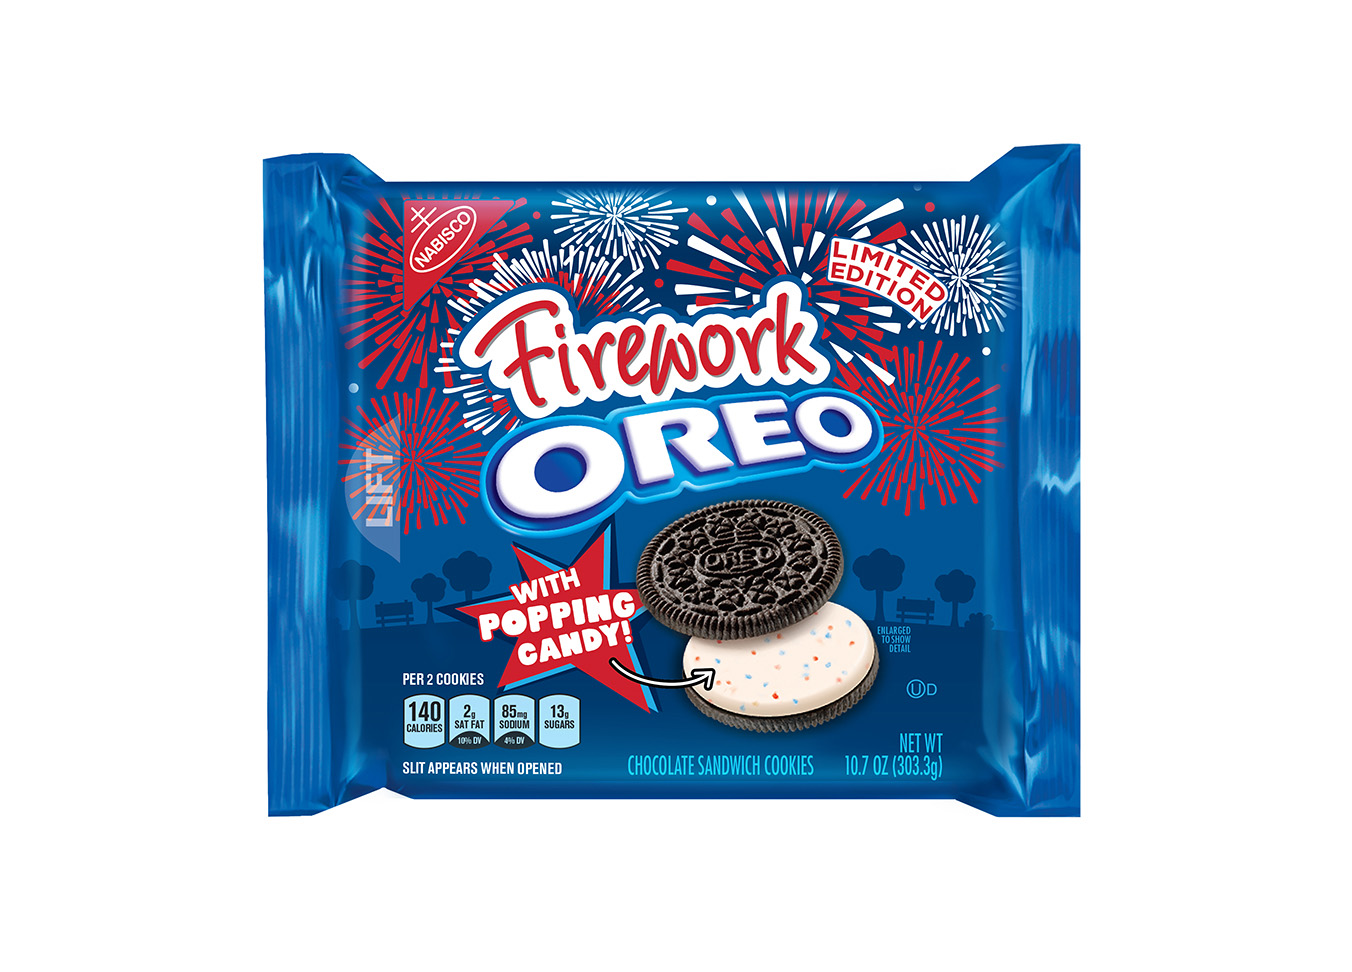 When it comes to delicious OREO creations, the brand believes the sky is the limit - literally! For the latest limited edition flavor, the OREO Wonder Vault released the wonder of a fireworks show.